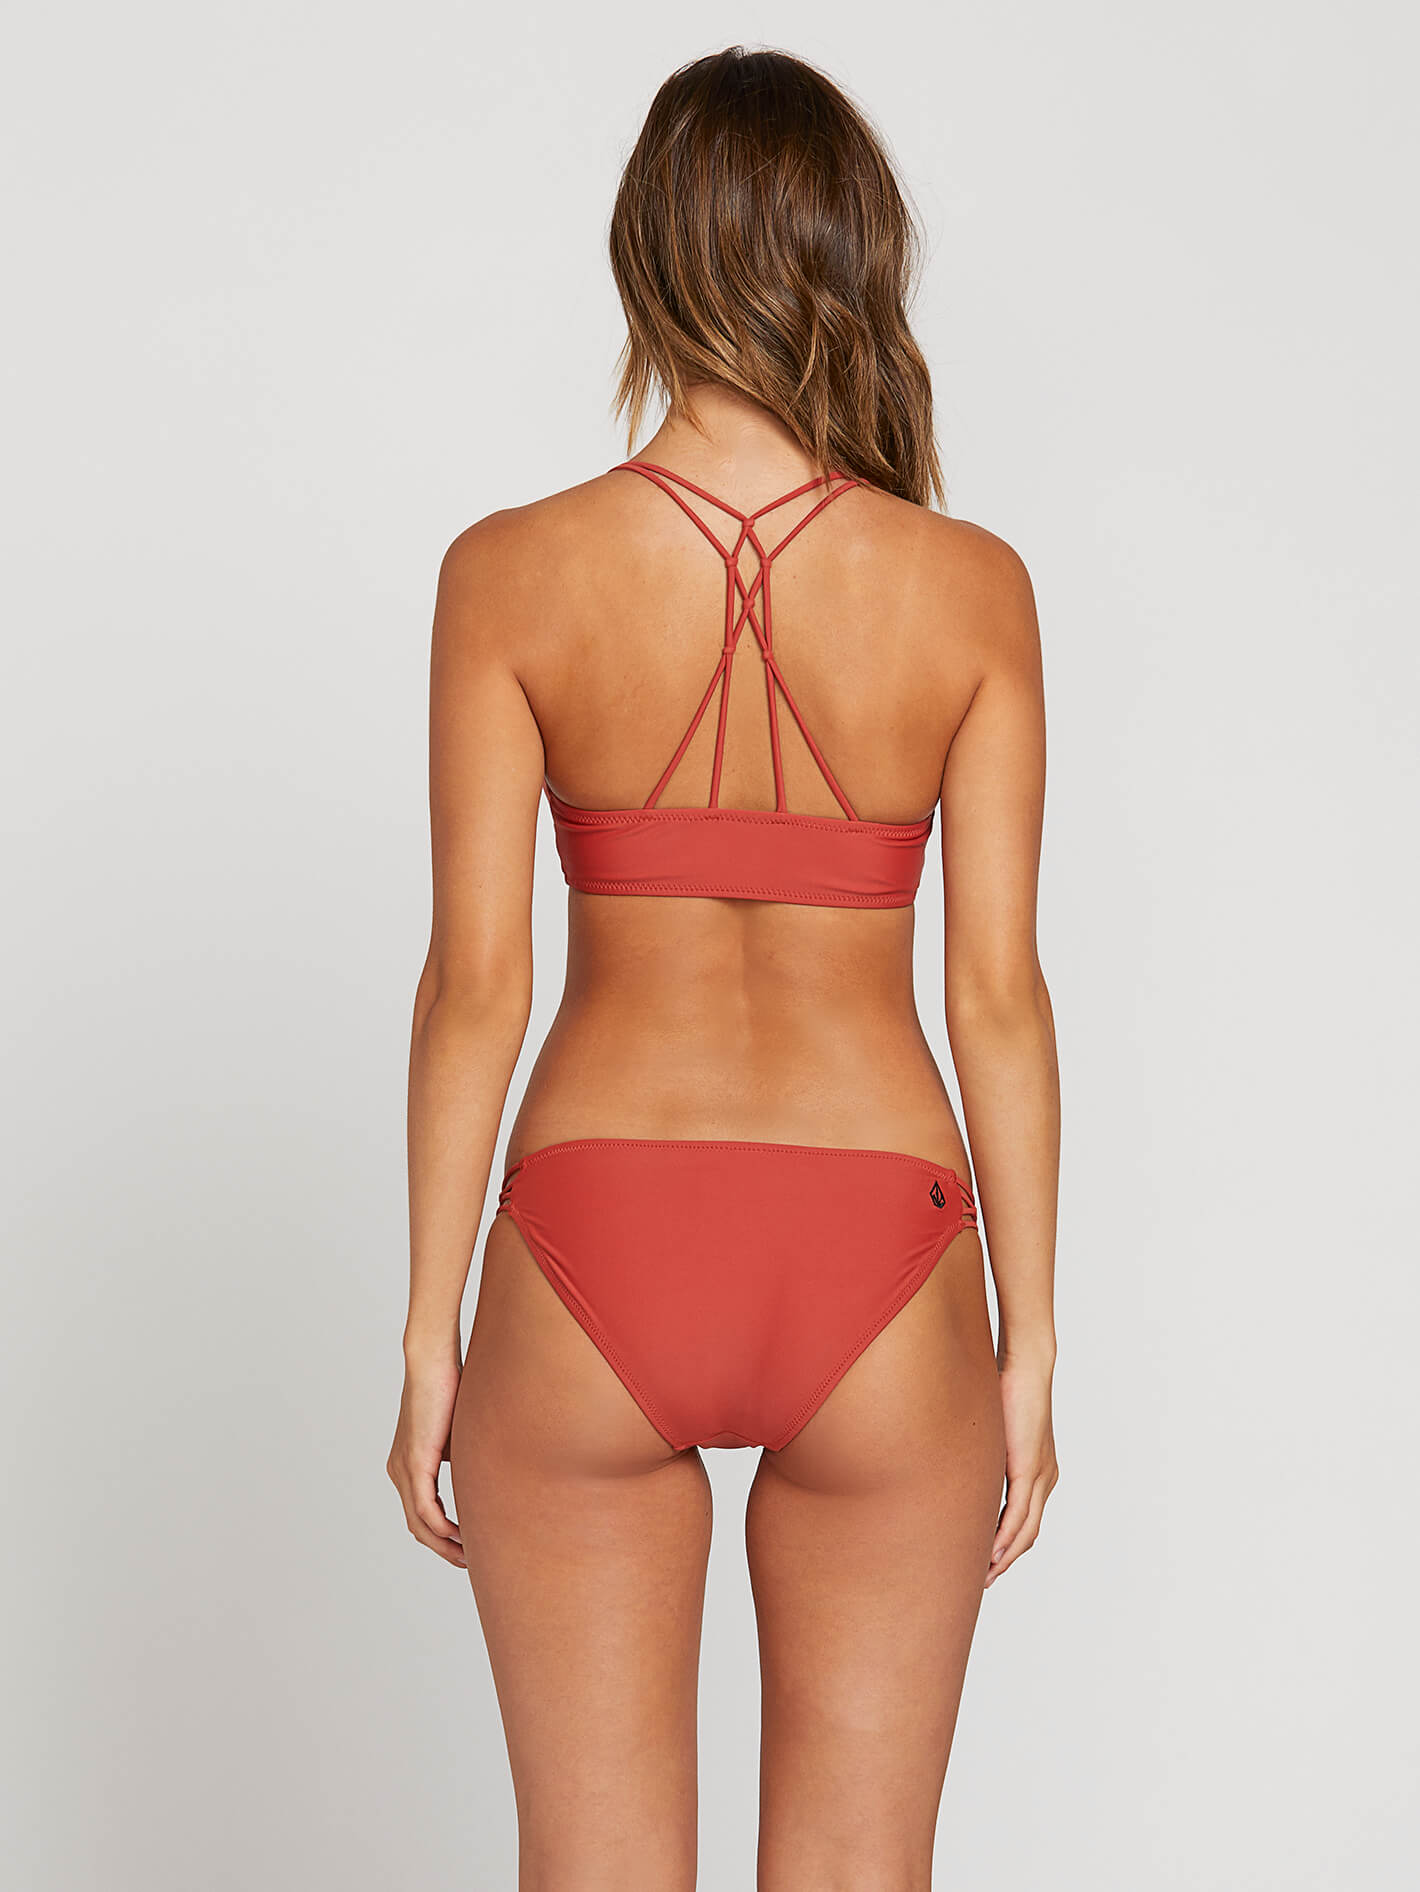 83f4af0fac Simply Solid Full Bottoms - Burnt Red in BURNT RED - Alternative View